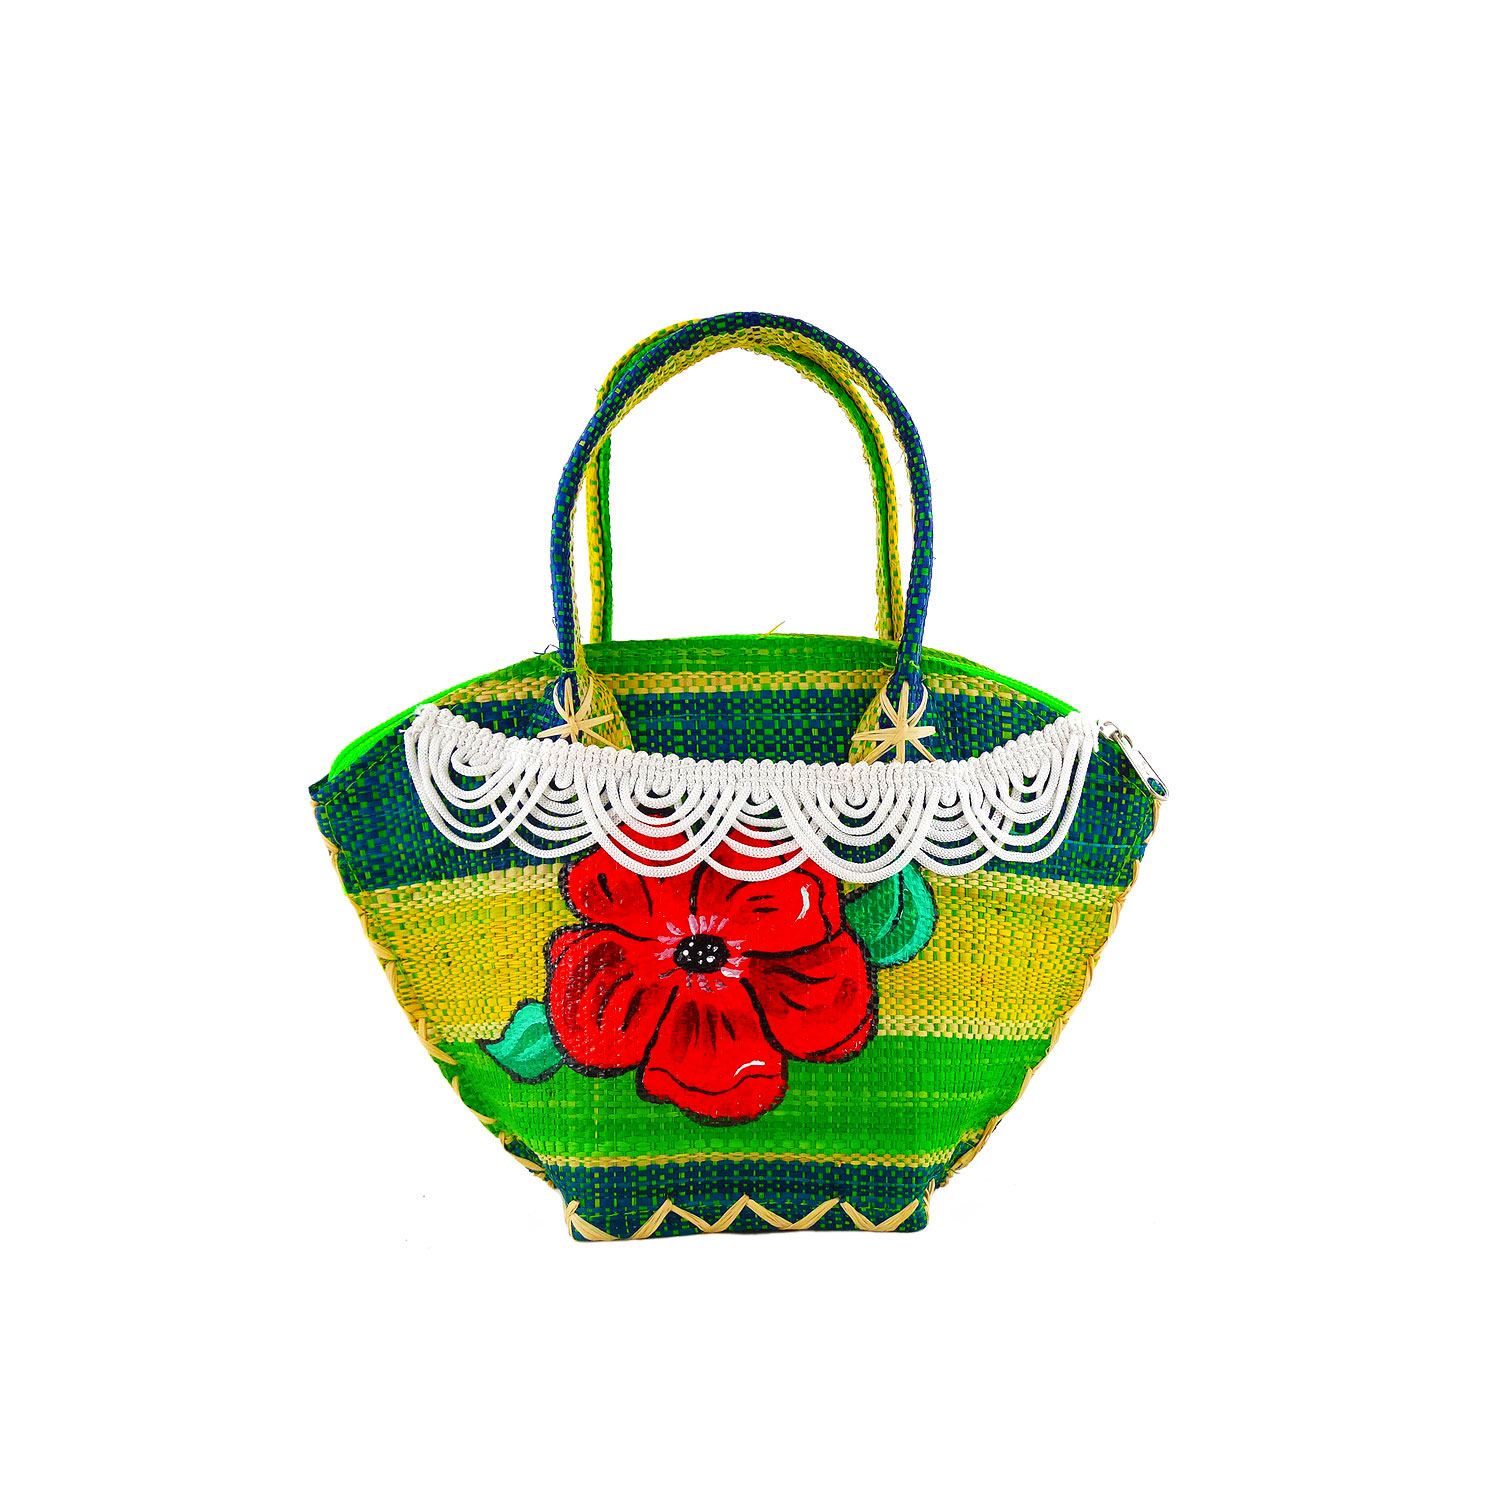 Handpainted Handbag - Flower